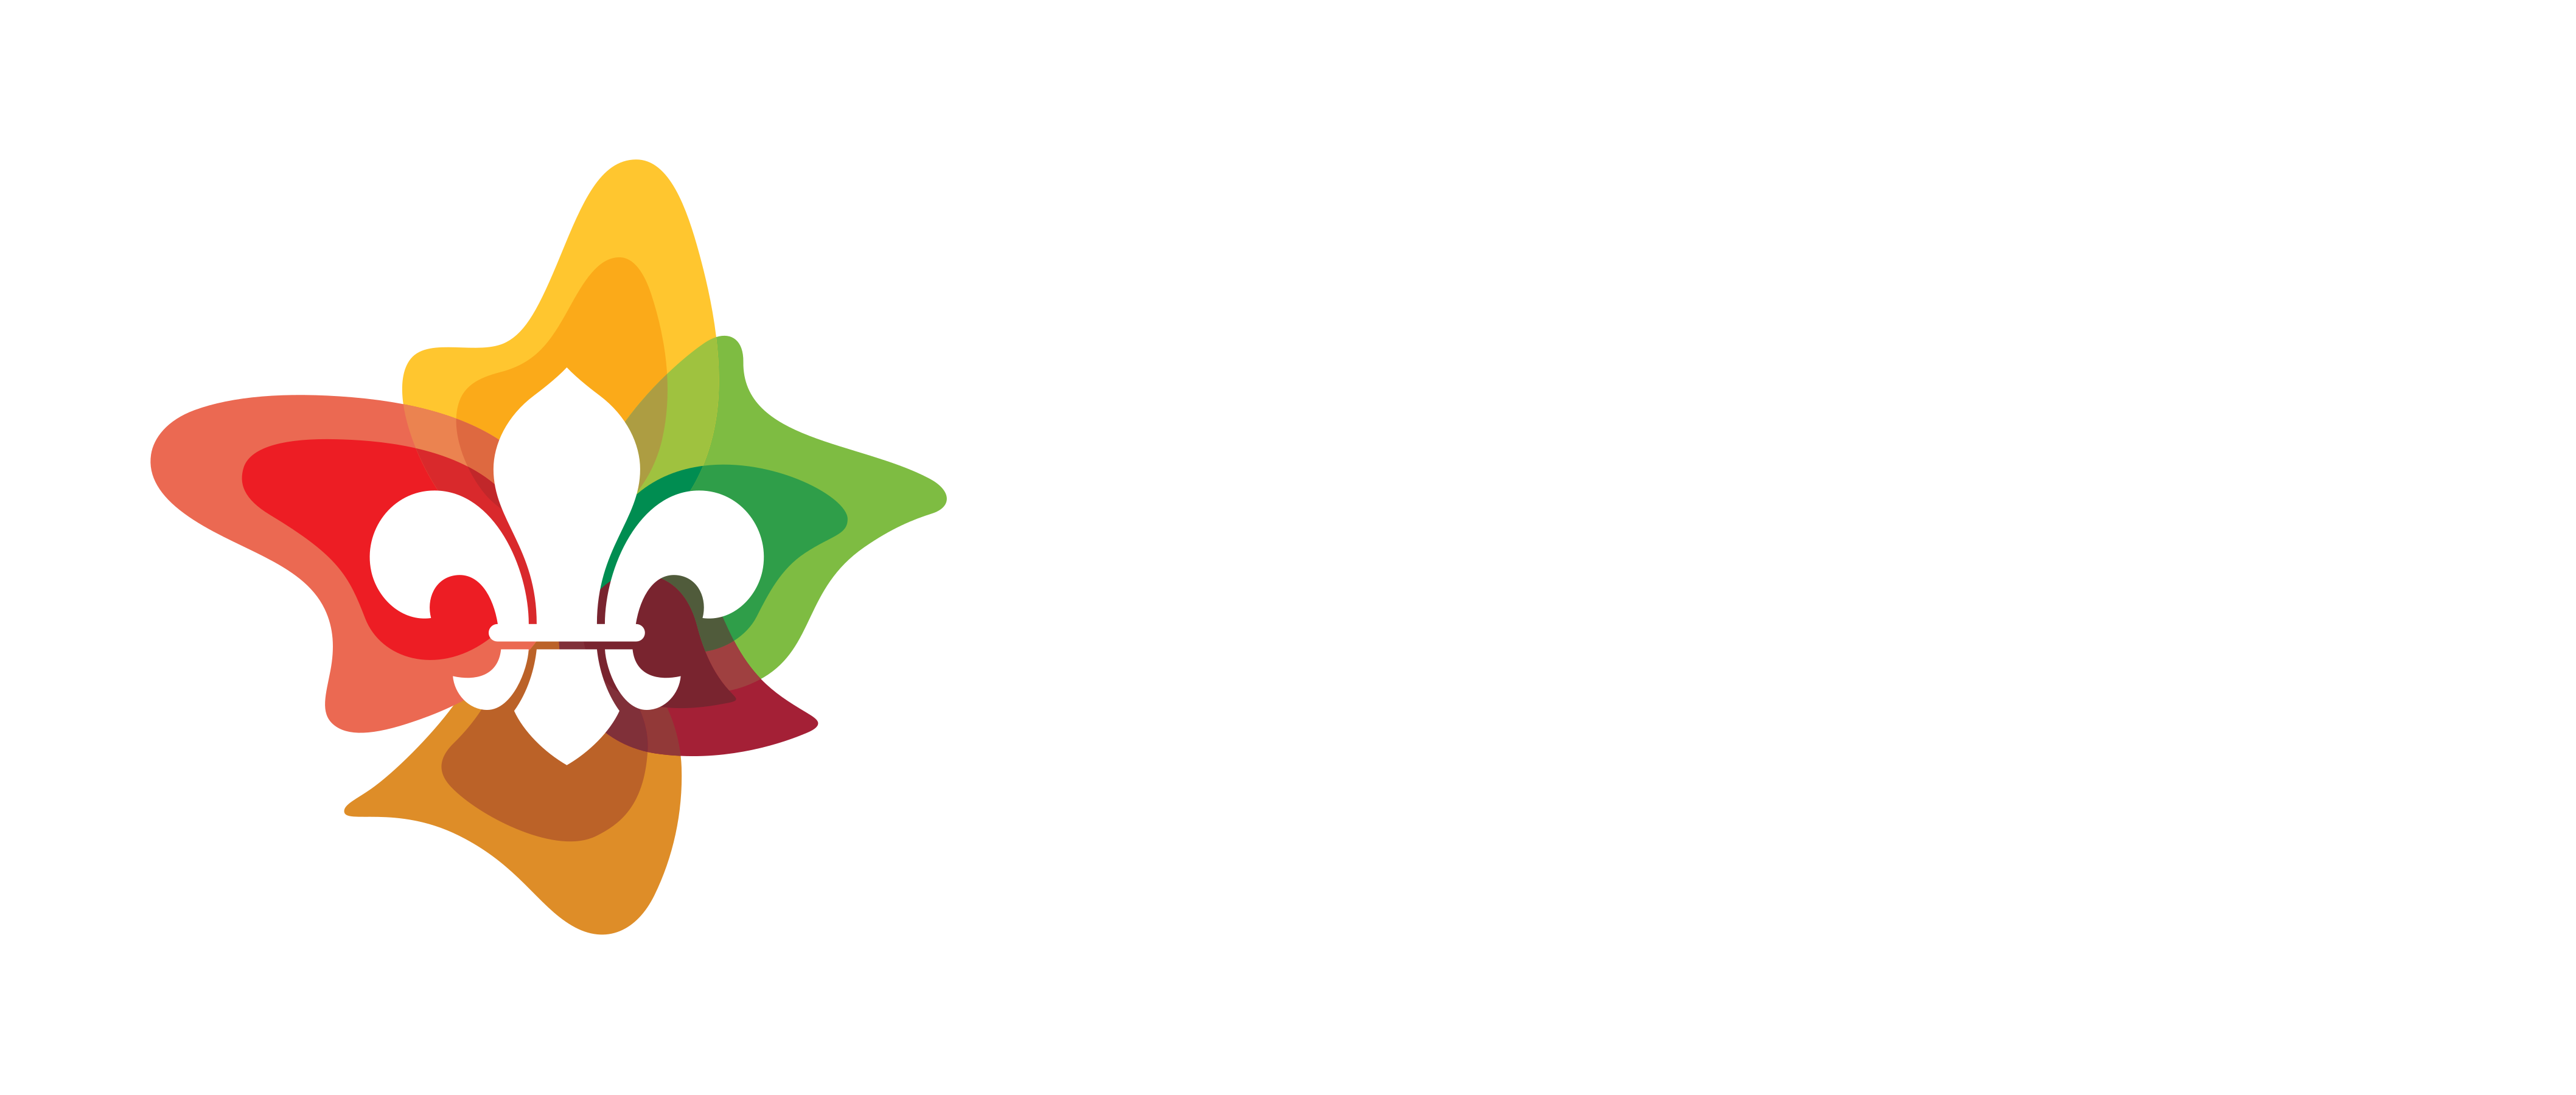 Sydney North Region Scouts